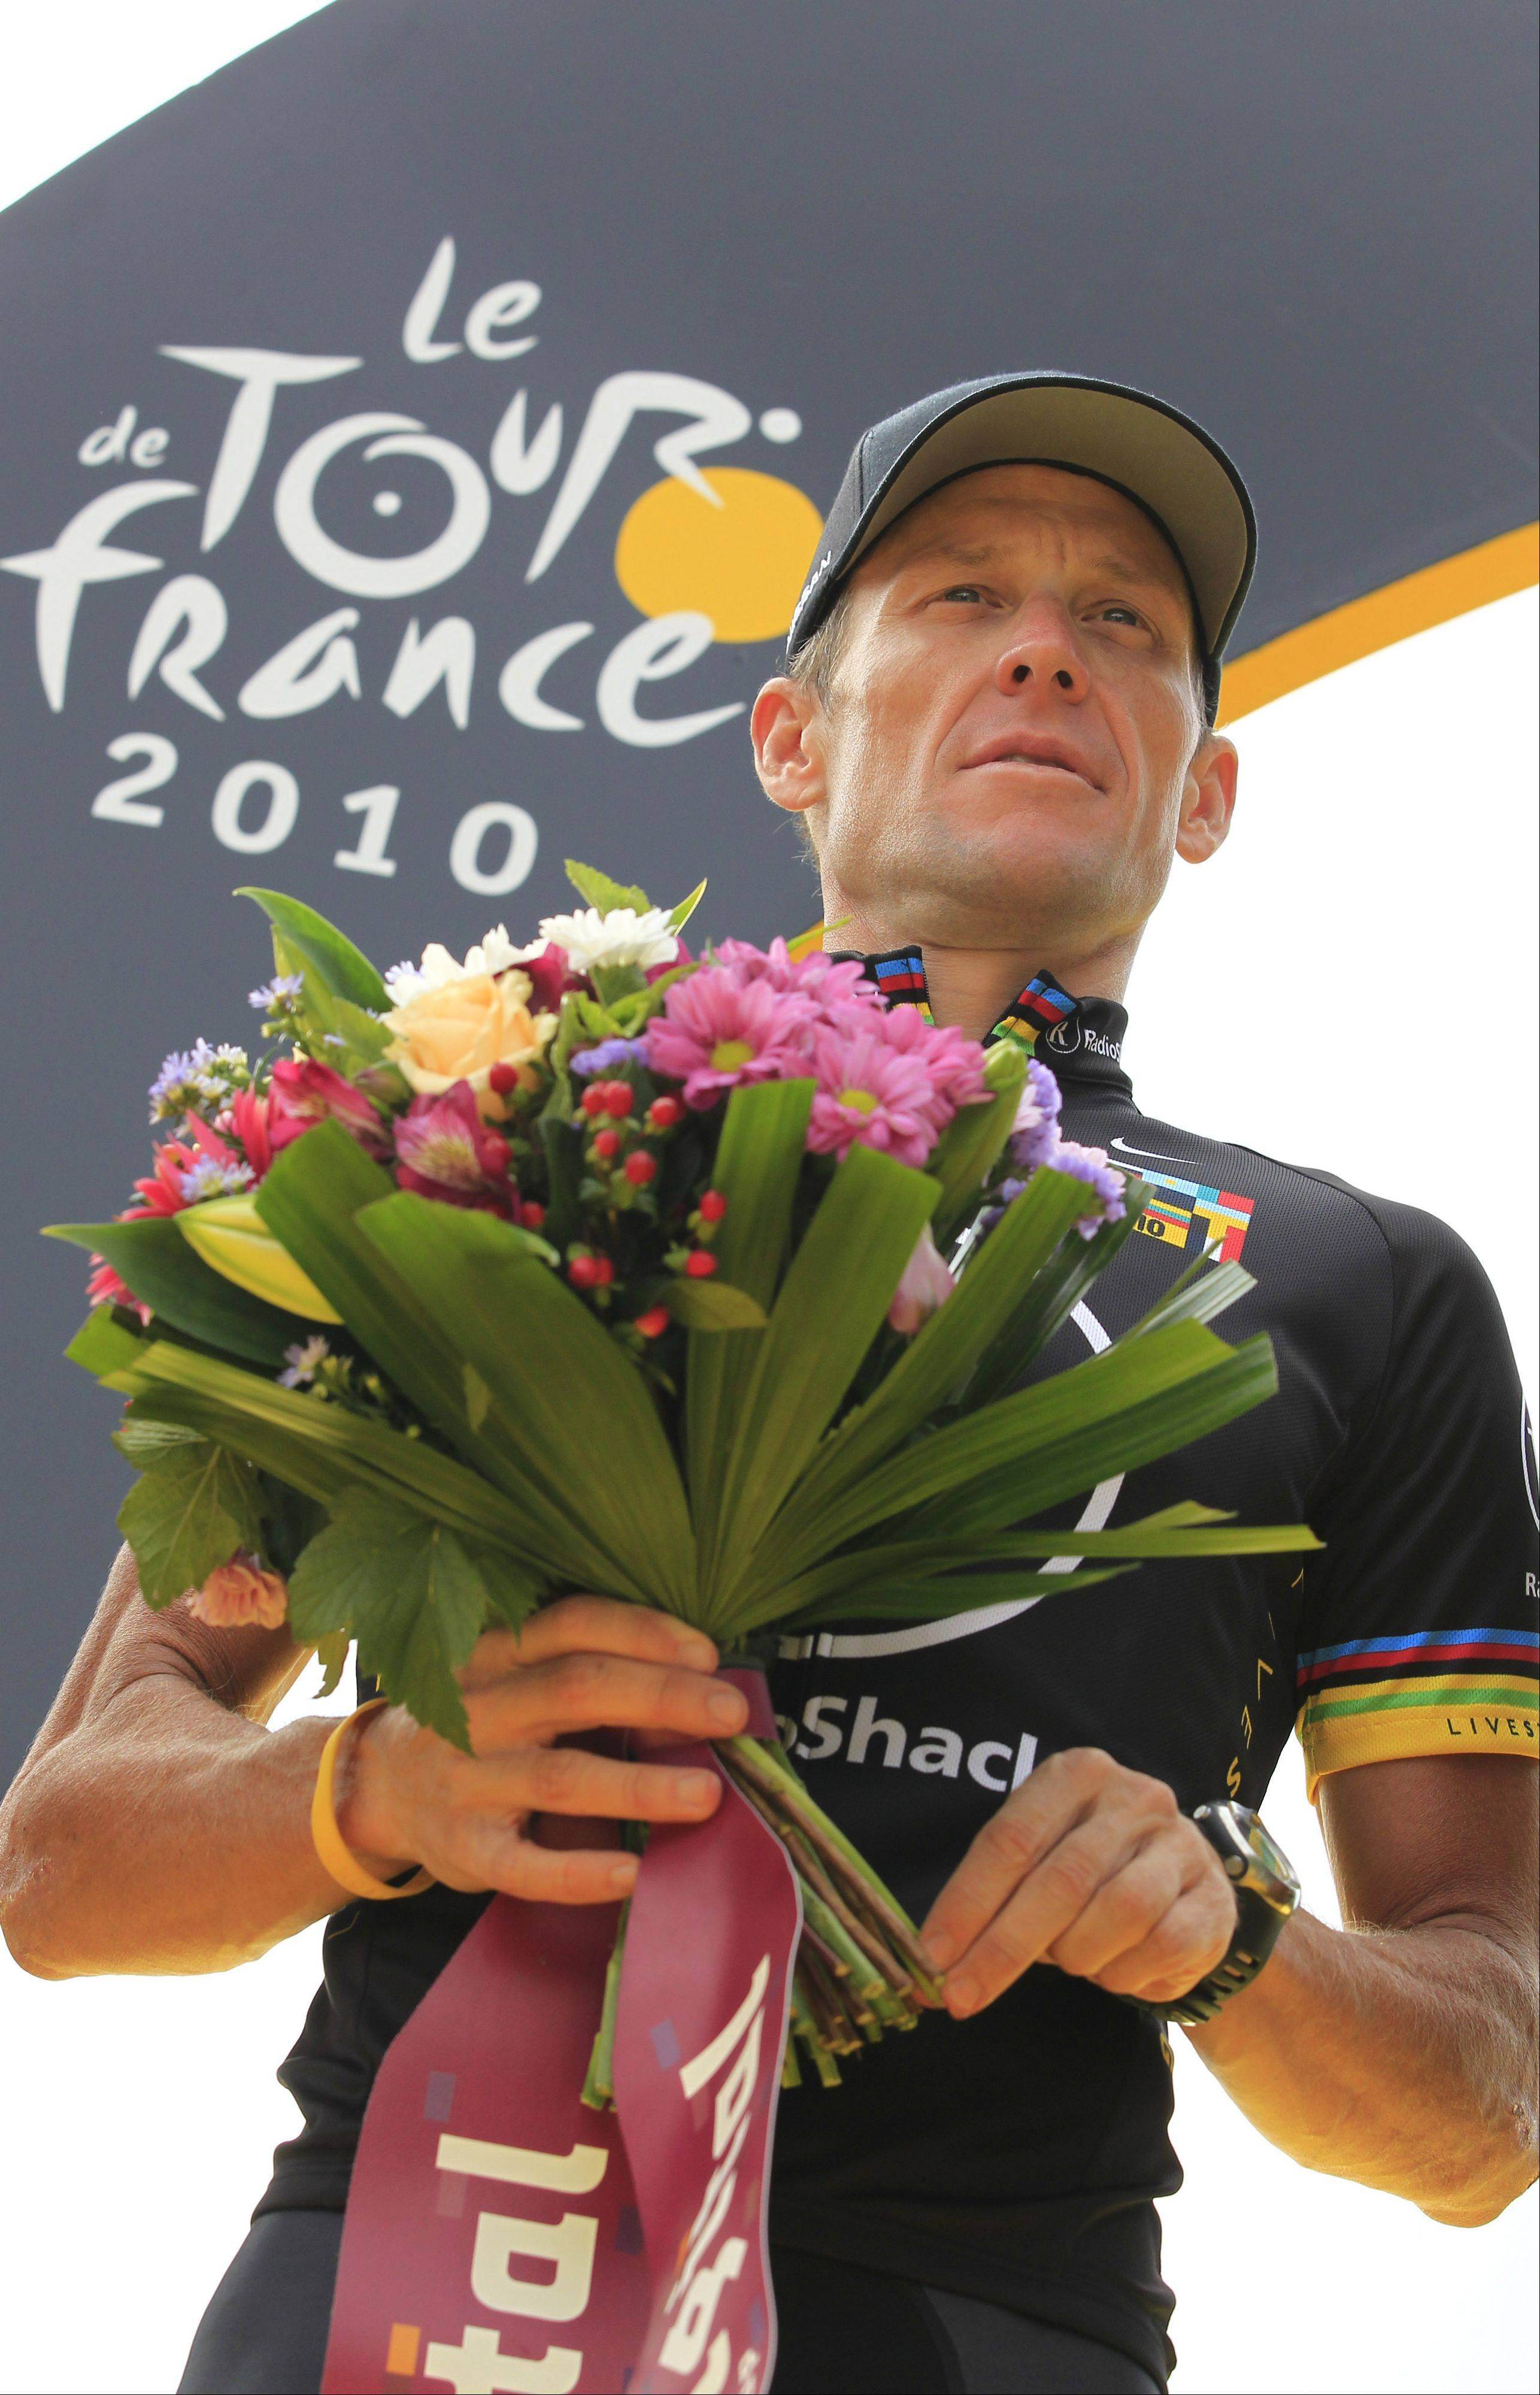 Lance Armstrong of the US holds flowers during the podium ceremony for the best team after the 20th and last stage of the Tour de France cycling race over 102.5 kilometers (63.7 miles) with start in Longjumeau and finish in Paris, France, Sunday, July 25, 2010.